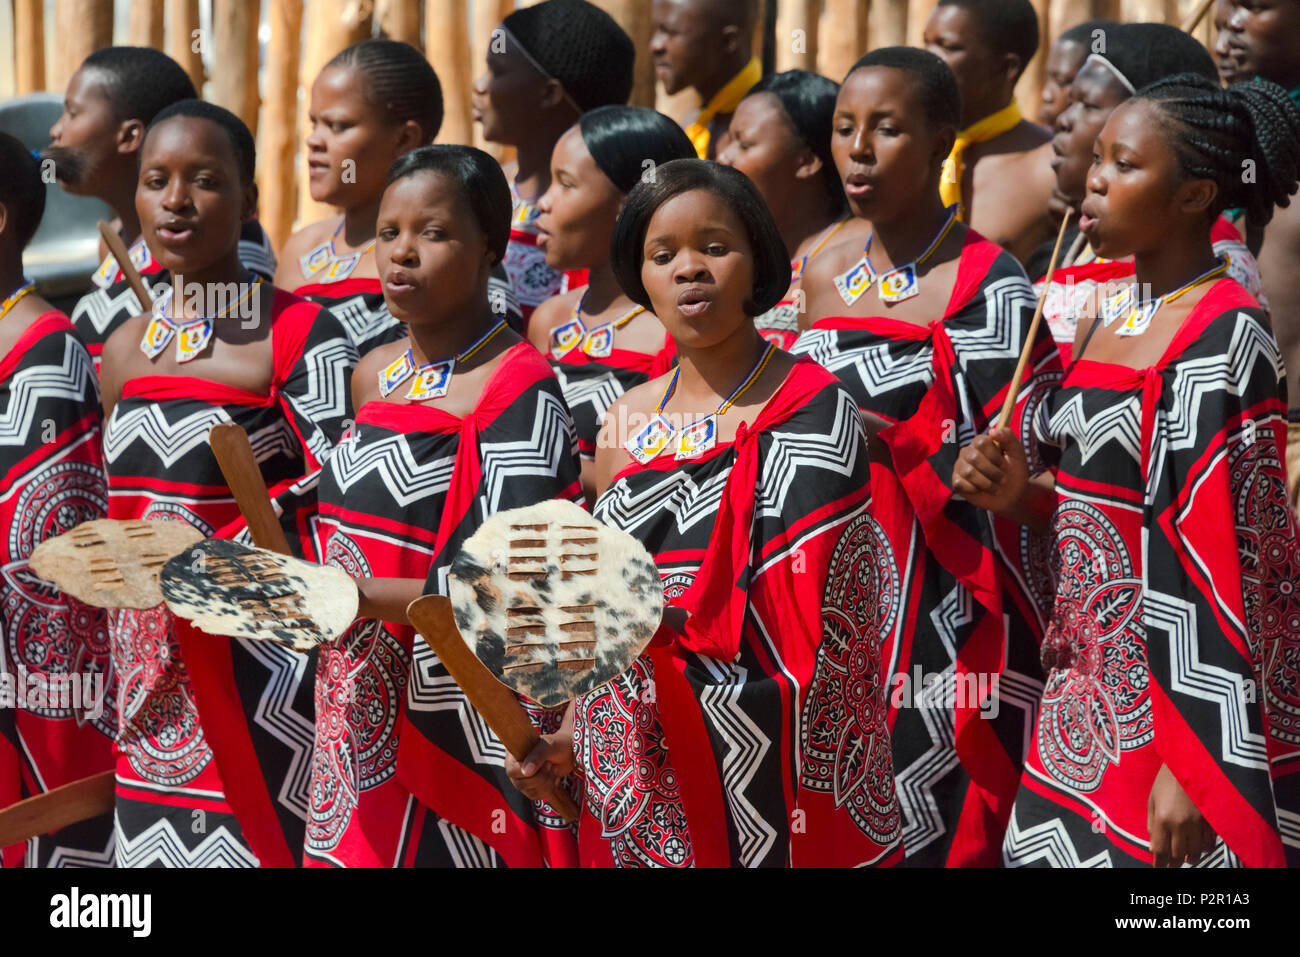 Swazi girls in traditional clothing dancing, Mantenga Cultural Village, Swaziland - Stock Image